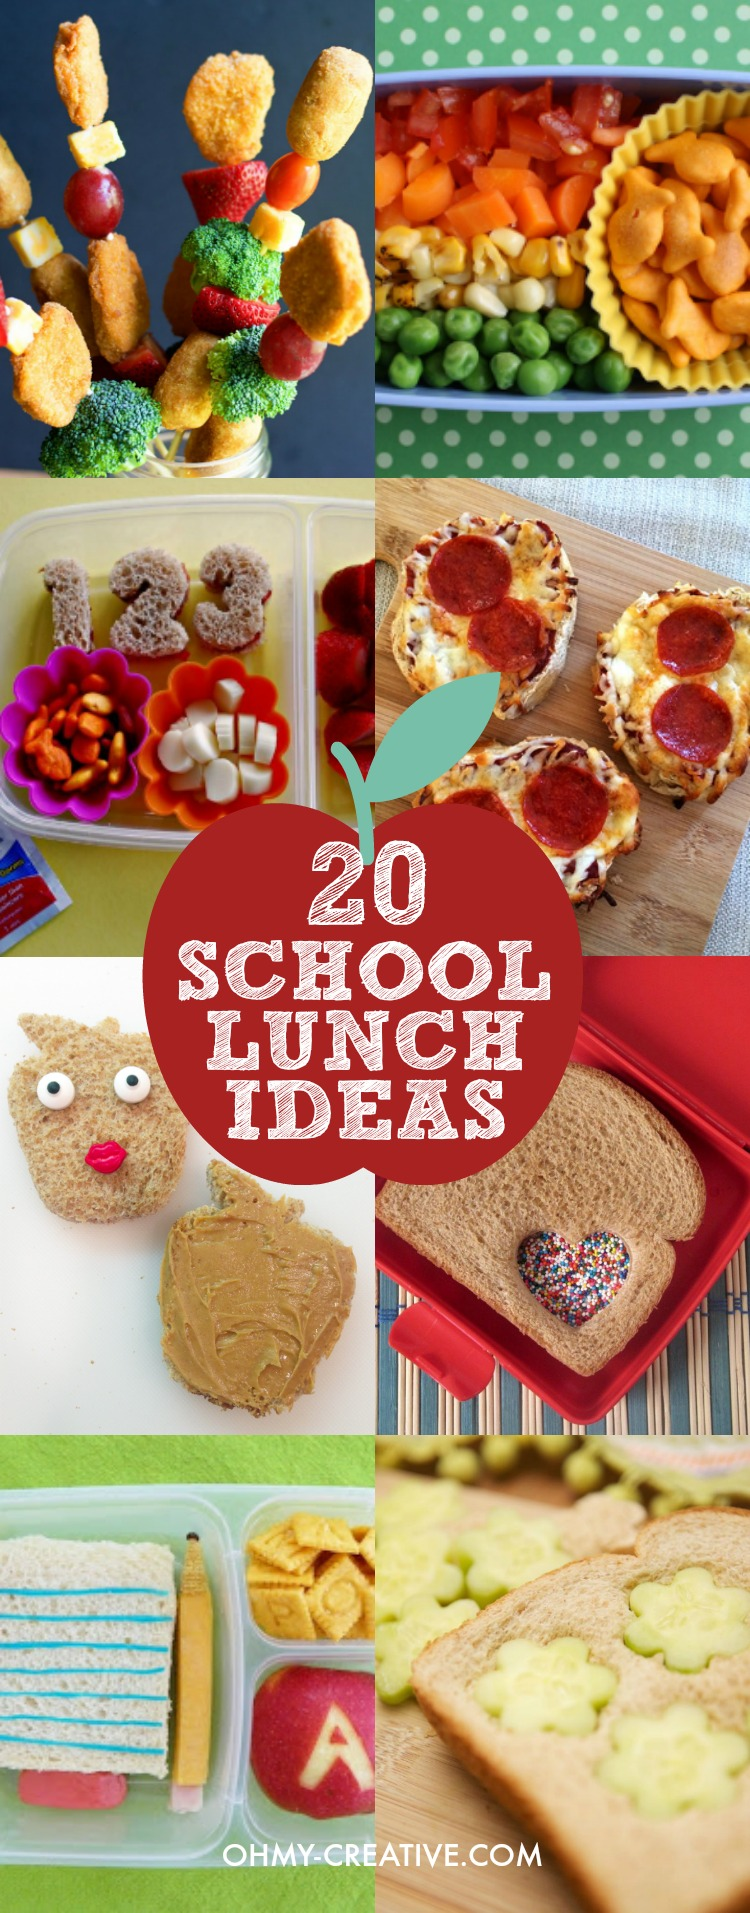 Ideas For Kids Bedroom: 20 Creative School Lunch Ideas For Kids